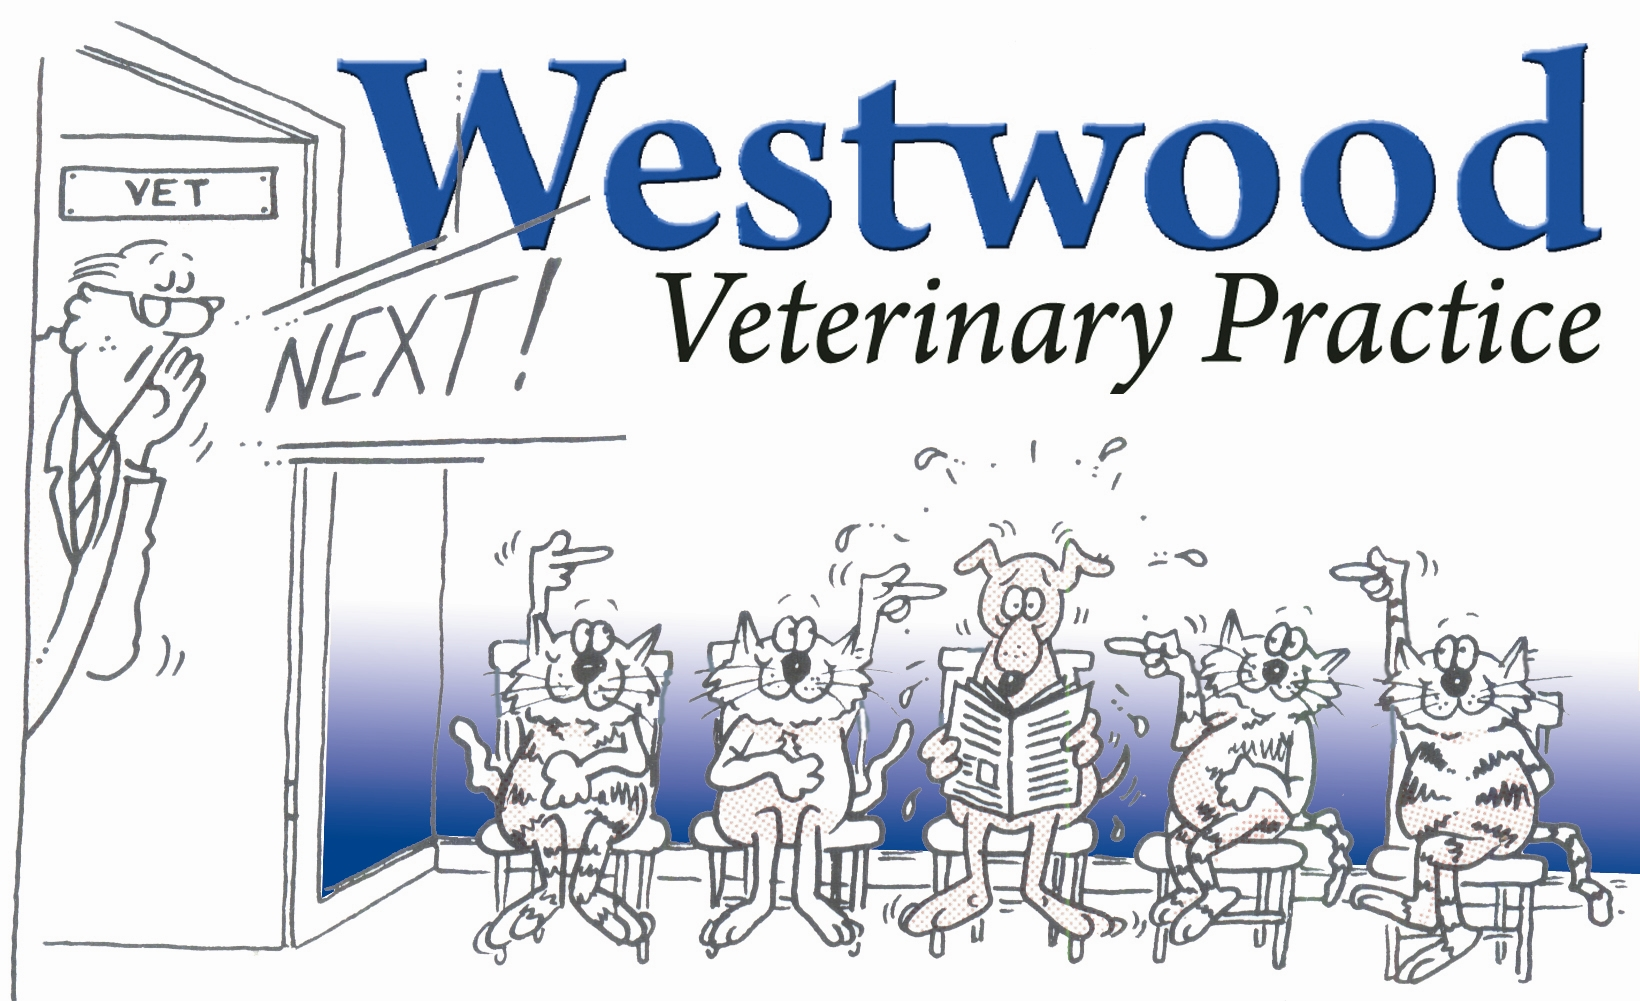 Westwood Veterinary Practice Ltd - Boston Spa